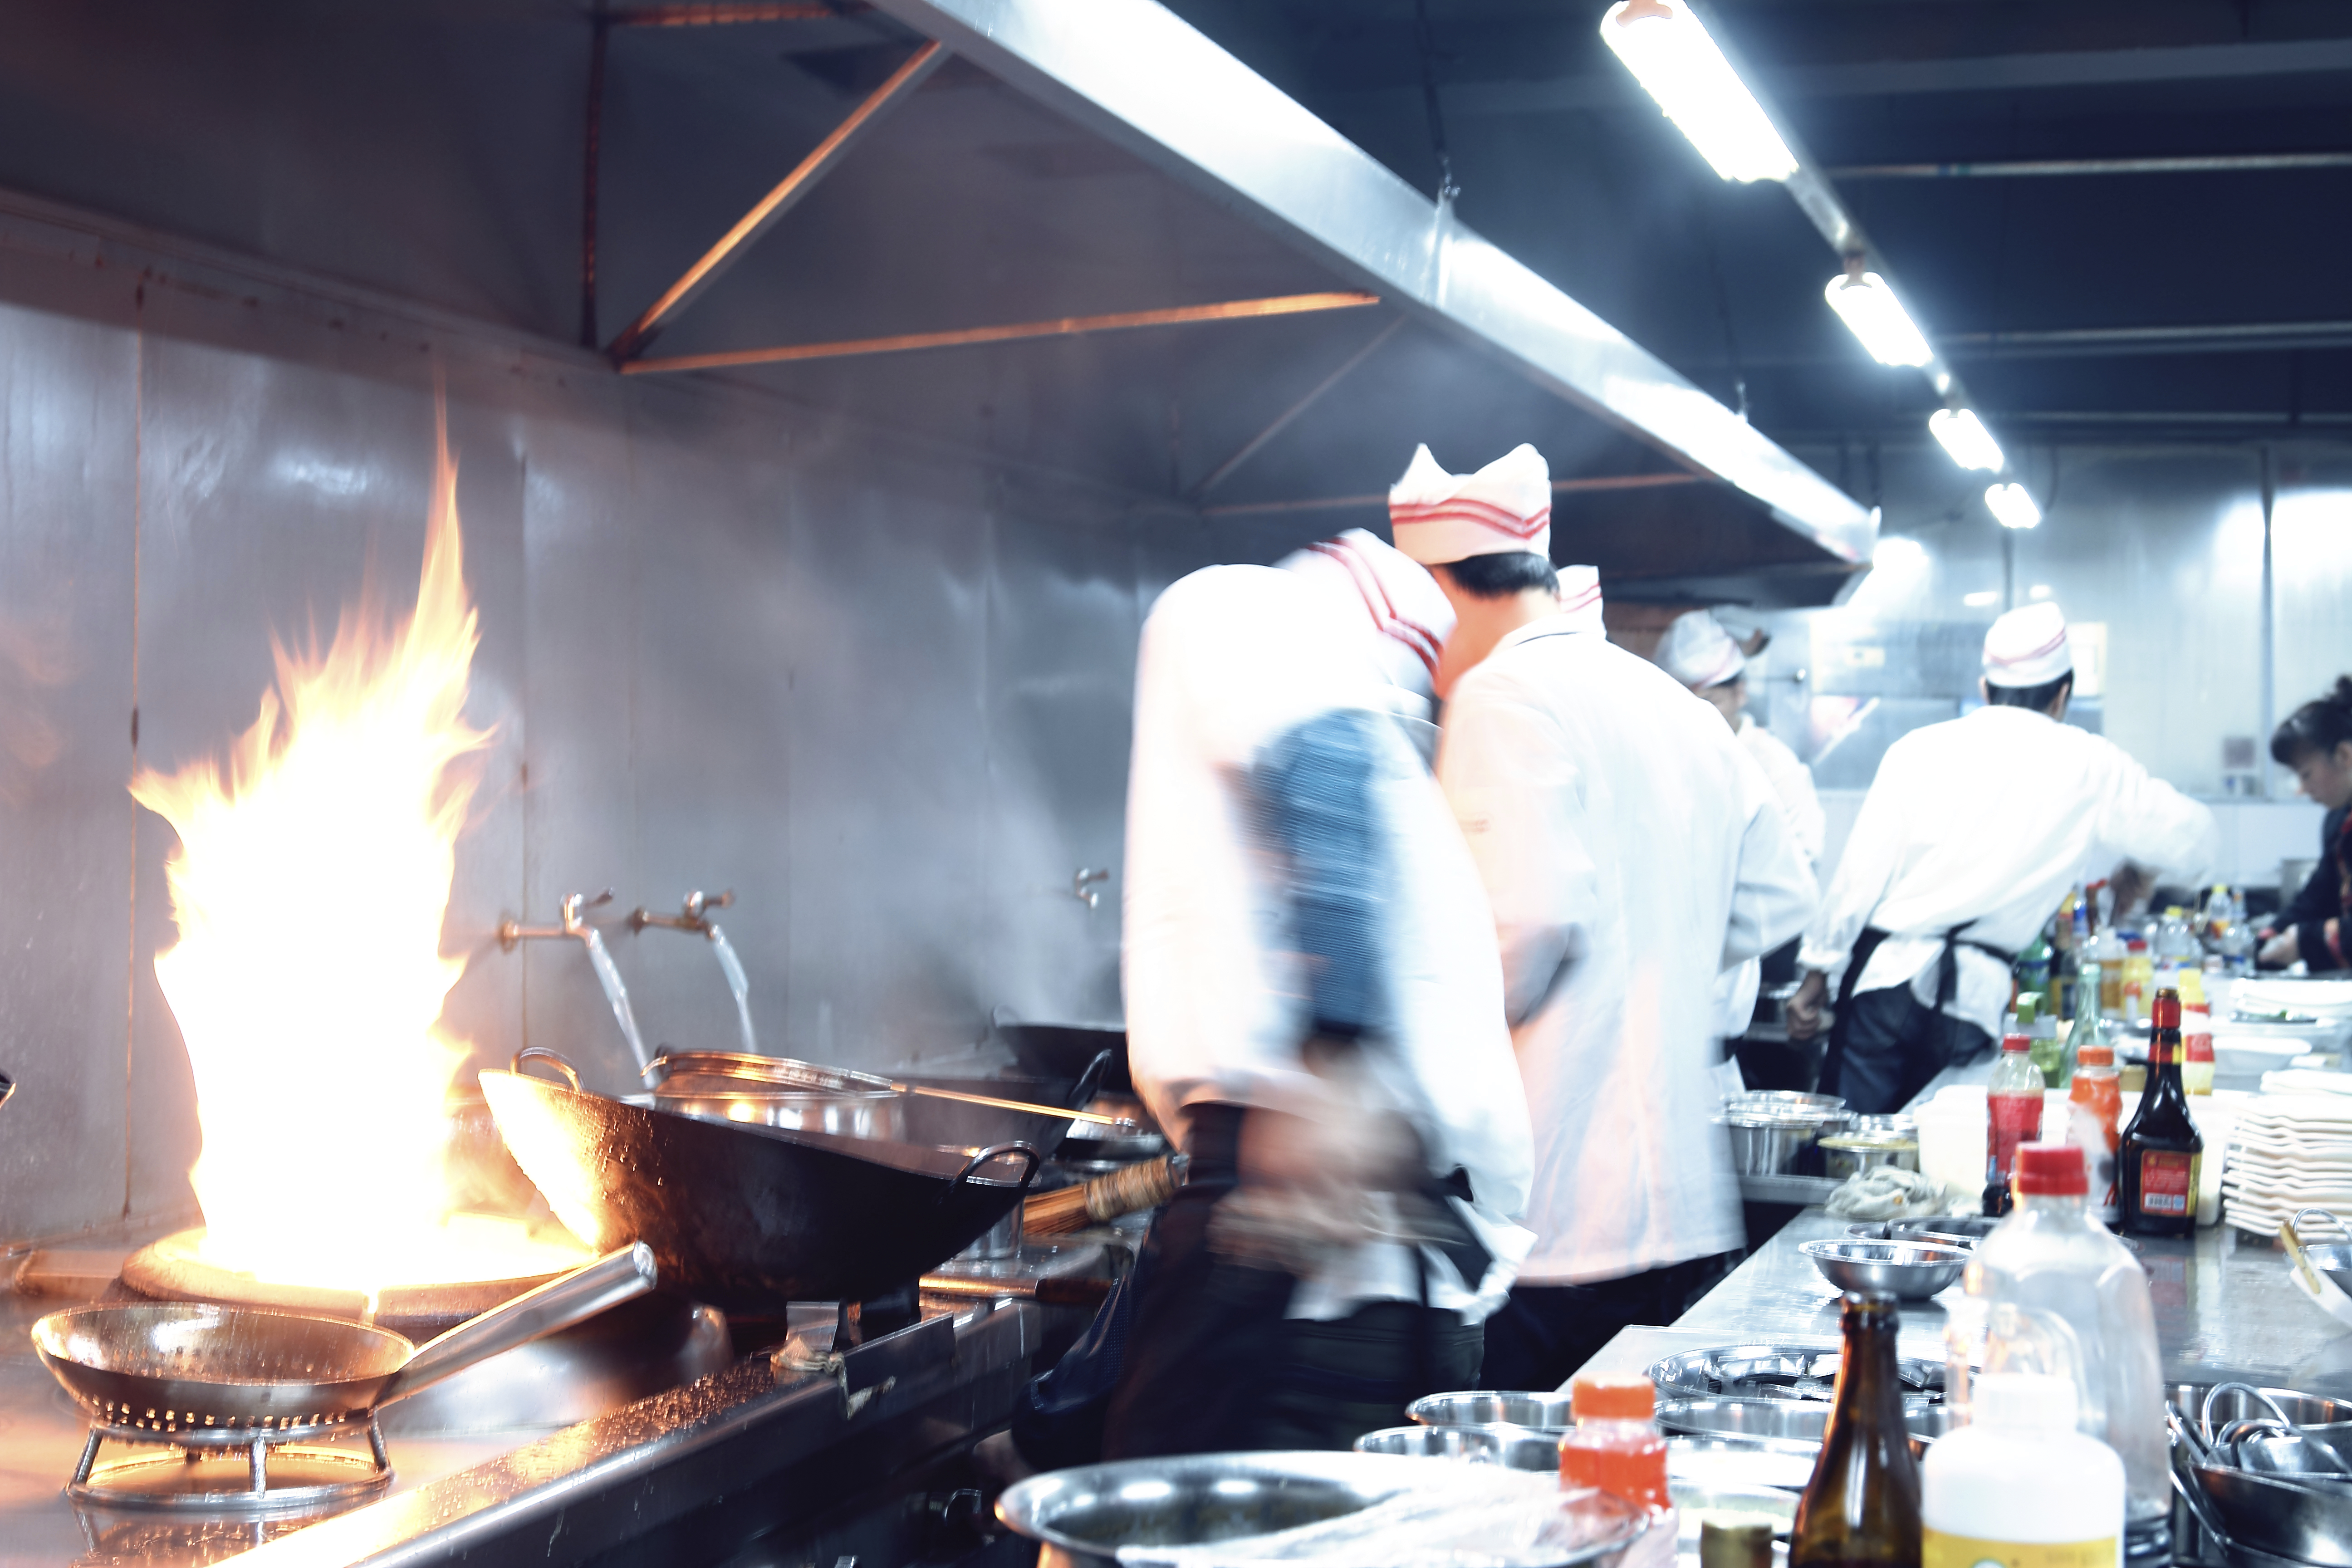 Chefs in motion